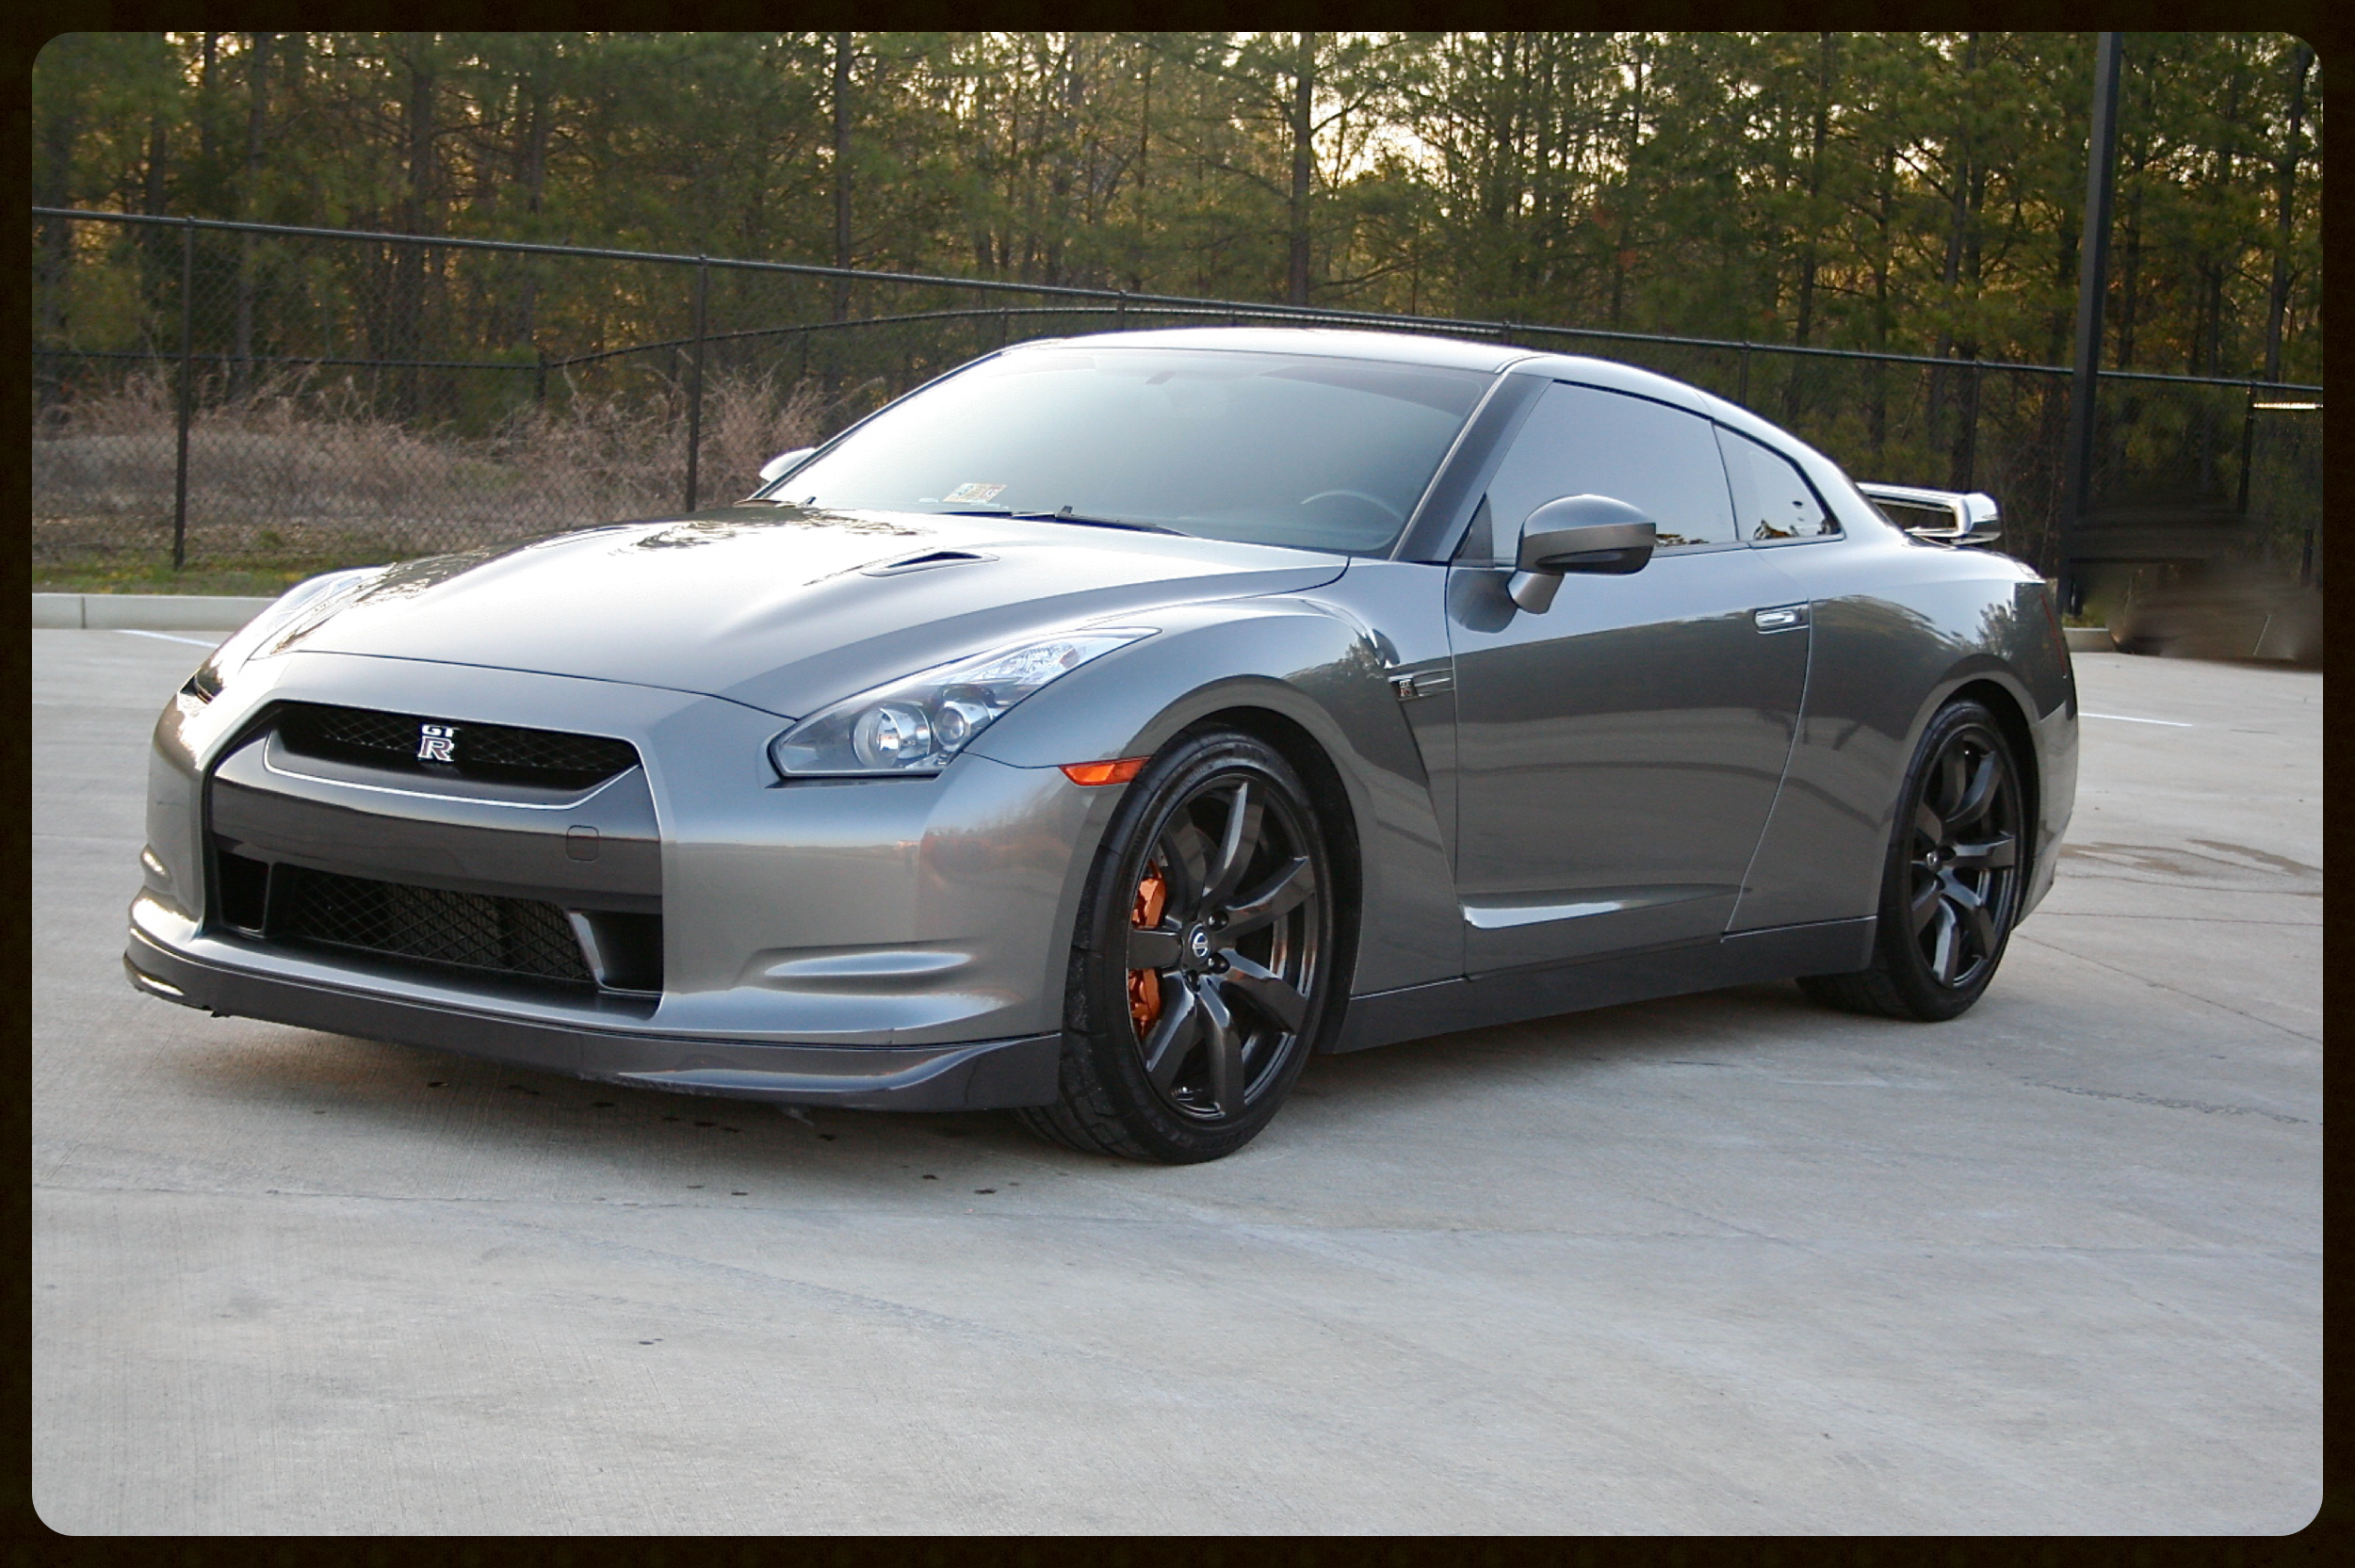 Nissan GT-R...600HP Package...Only 6K Miles...Click to View More Photos